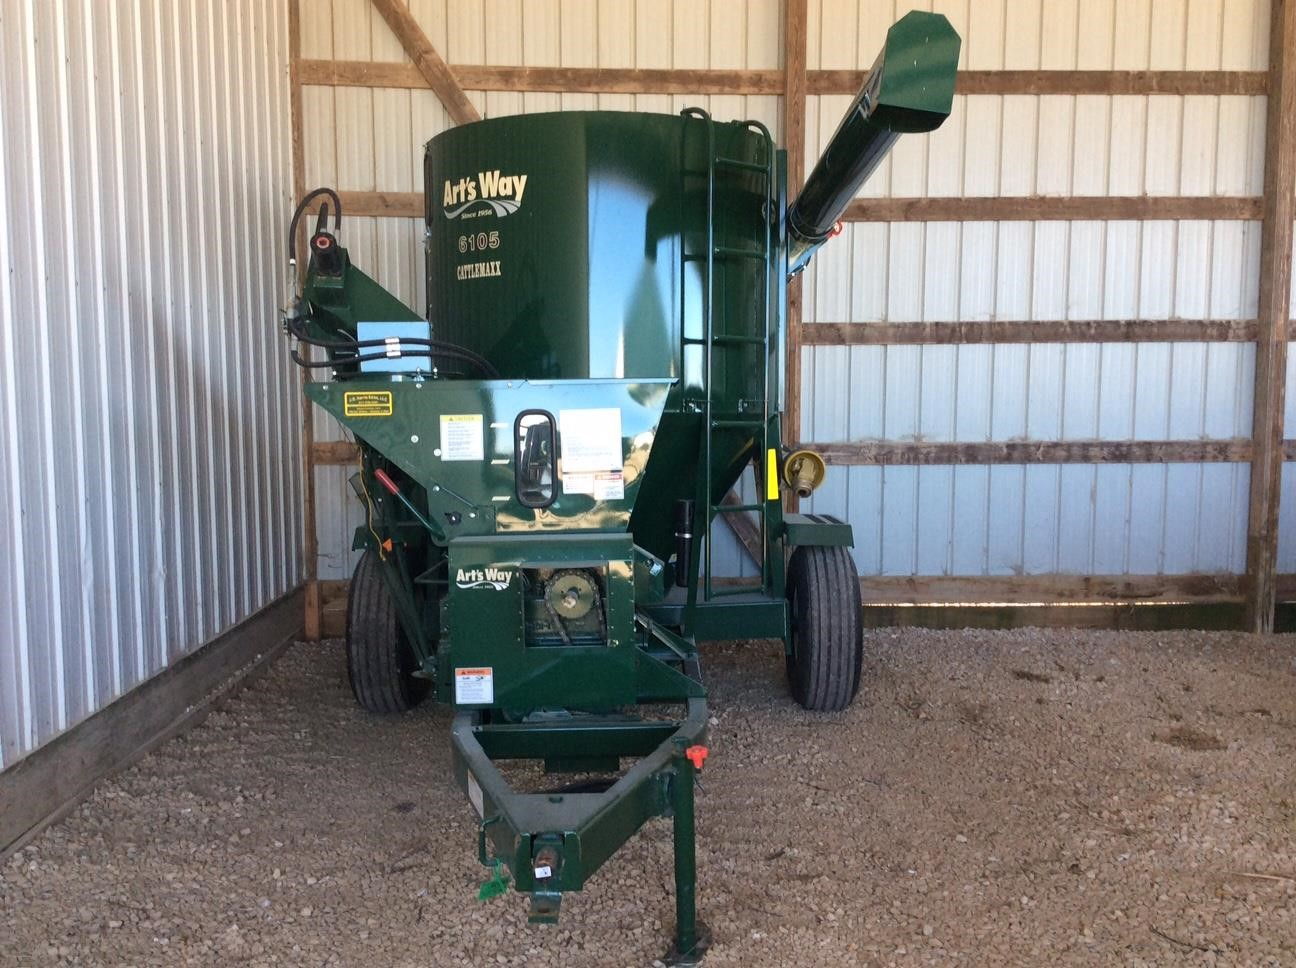 2020 Art's Way CATTLE MAXX  6105 Grinders and Mixer